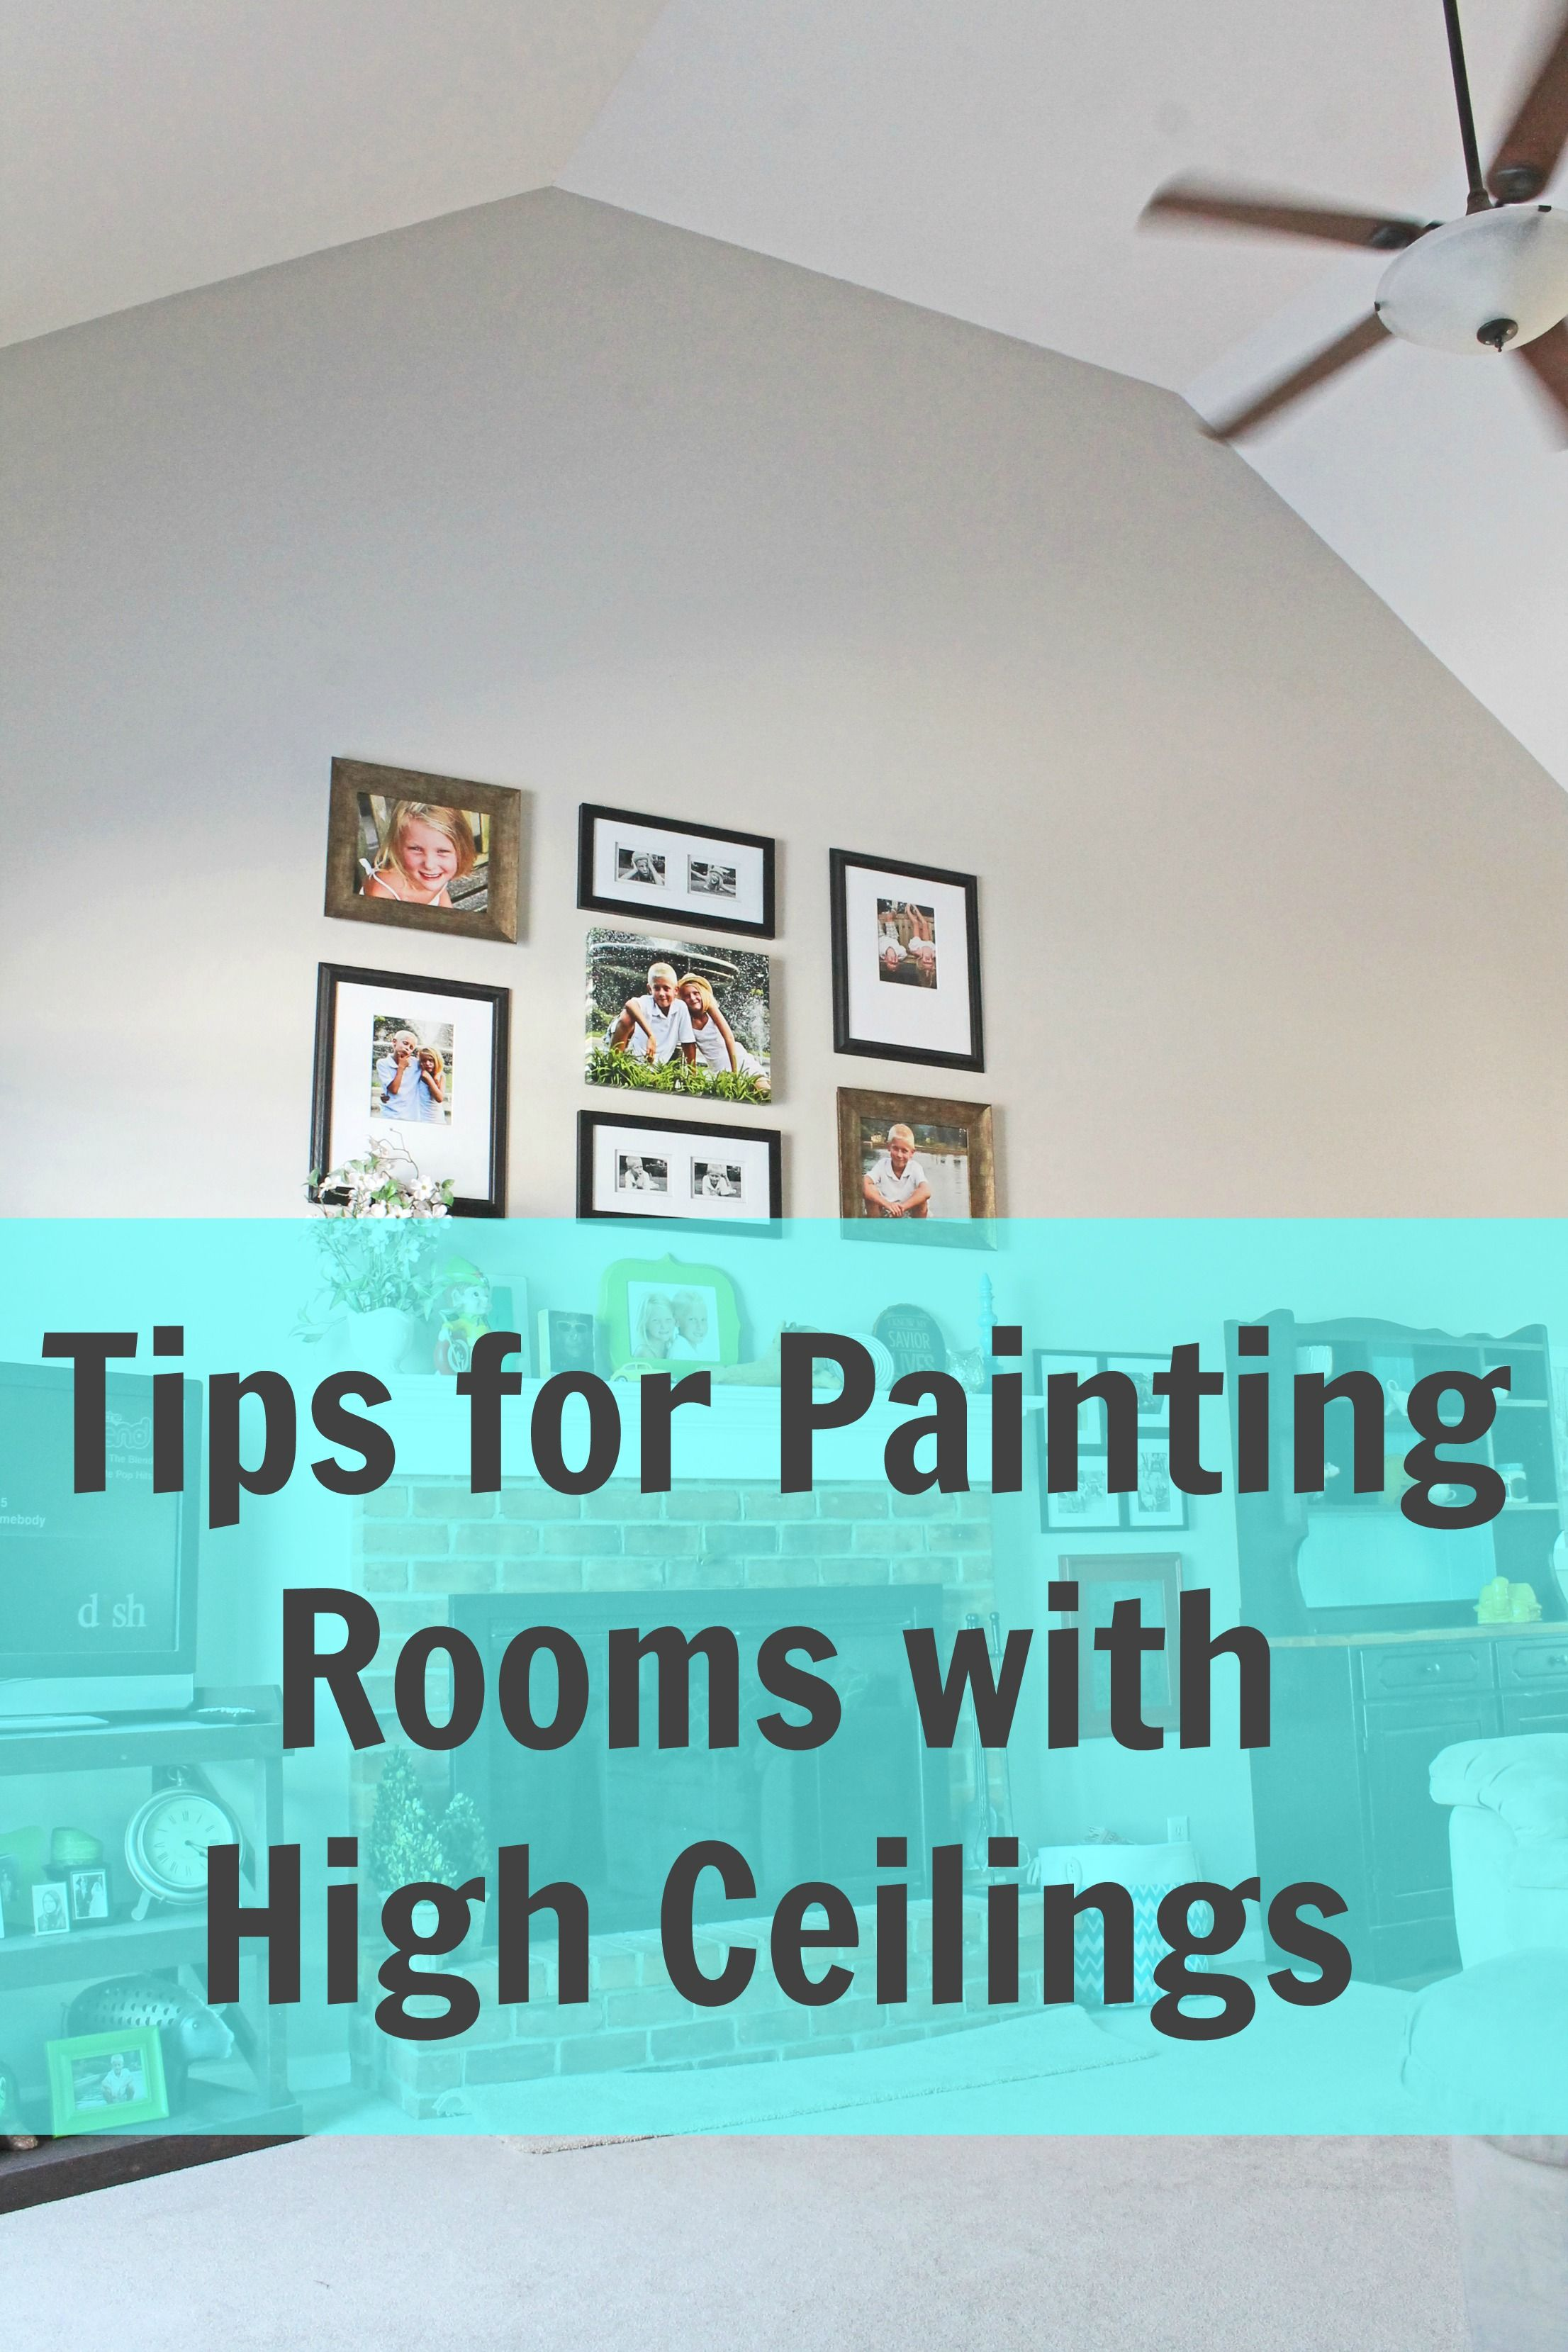 How To Paint A Room With High Ceilings High Ceiling Living Room High Ceiling Decorating High Ceiling #paint #ideas #for #living #room #with #high #ceilings